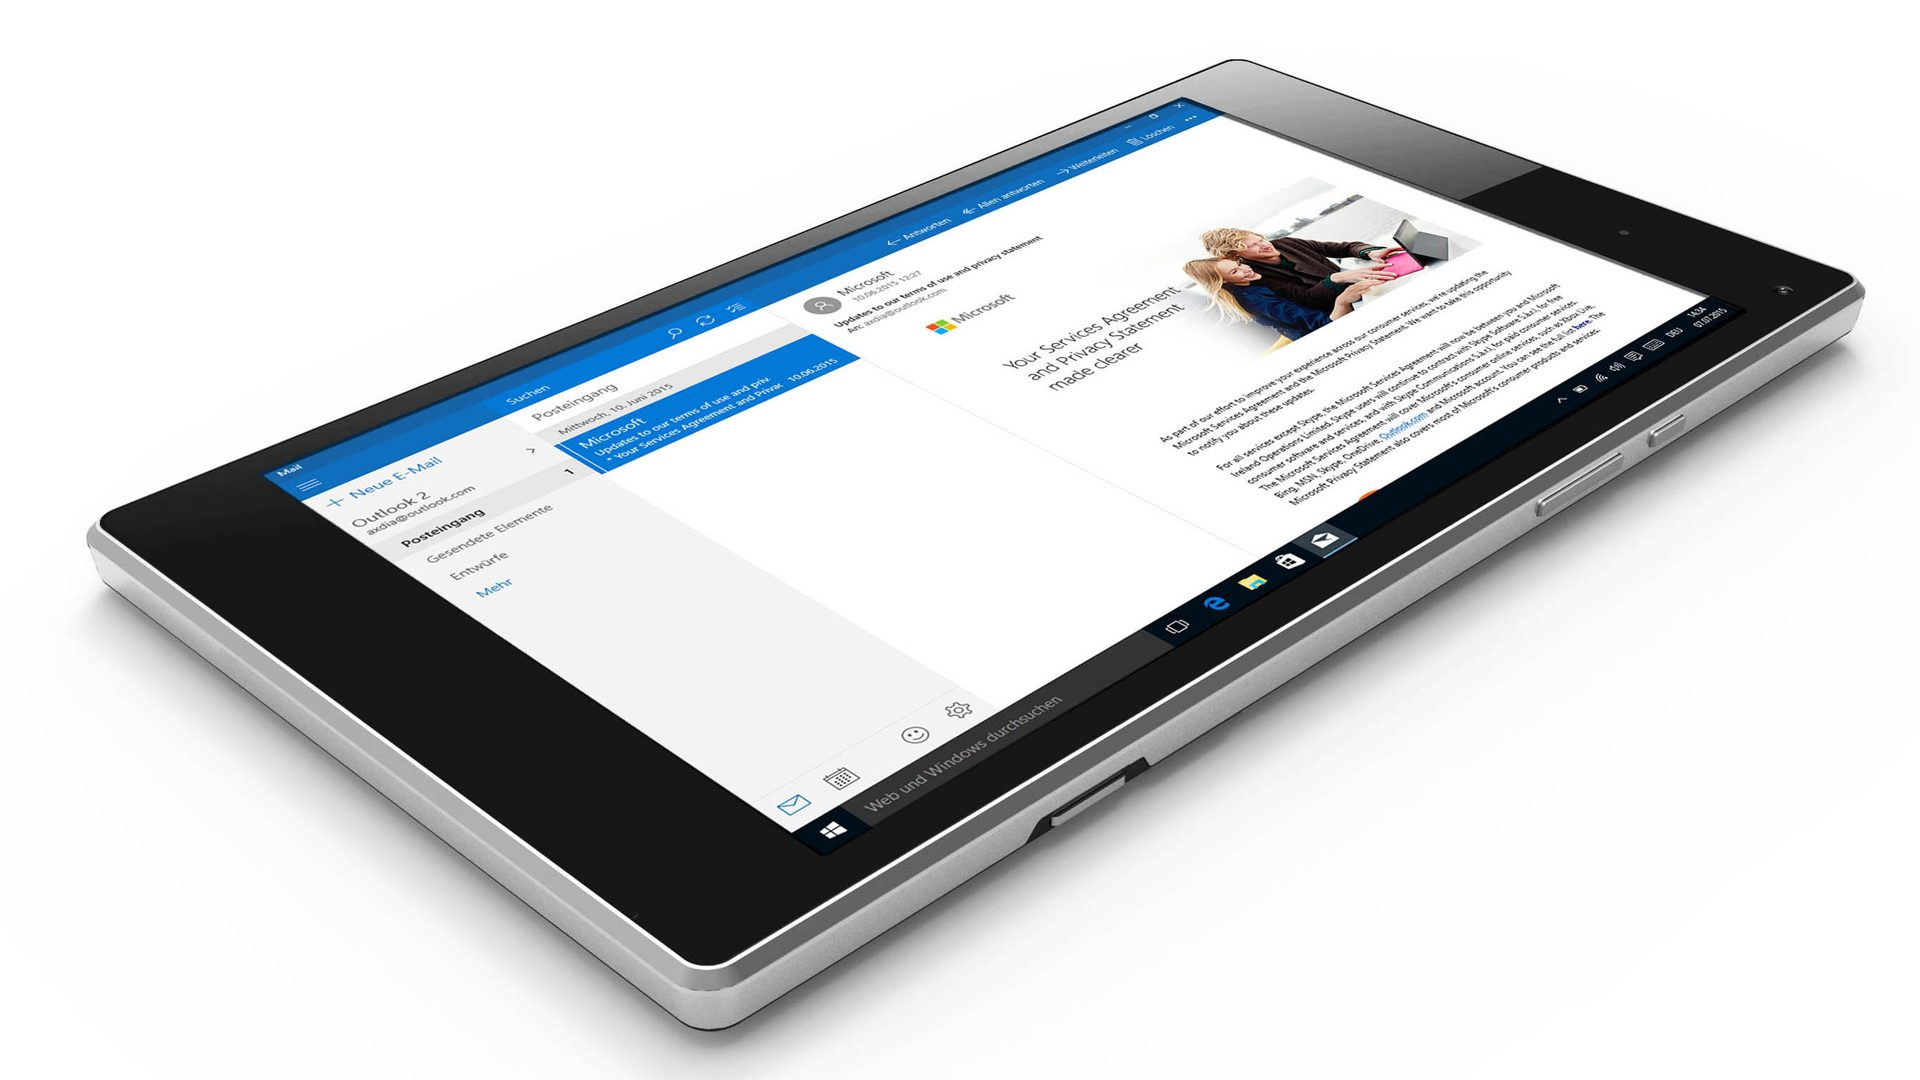 odys-cosmo-windows-x9-tablet-ansichten_3